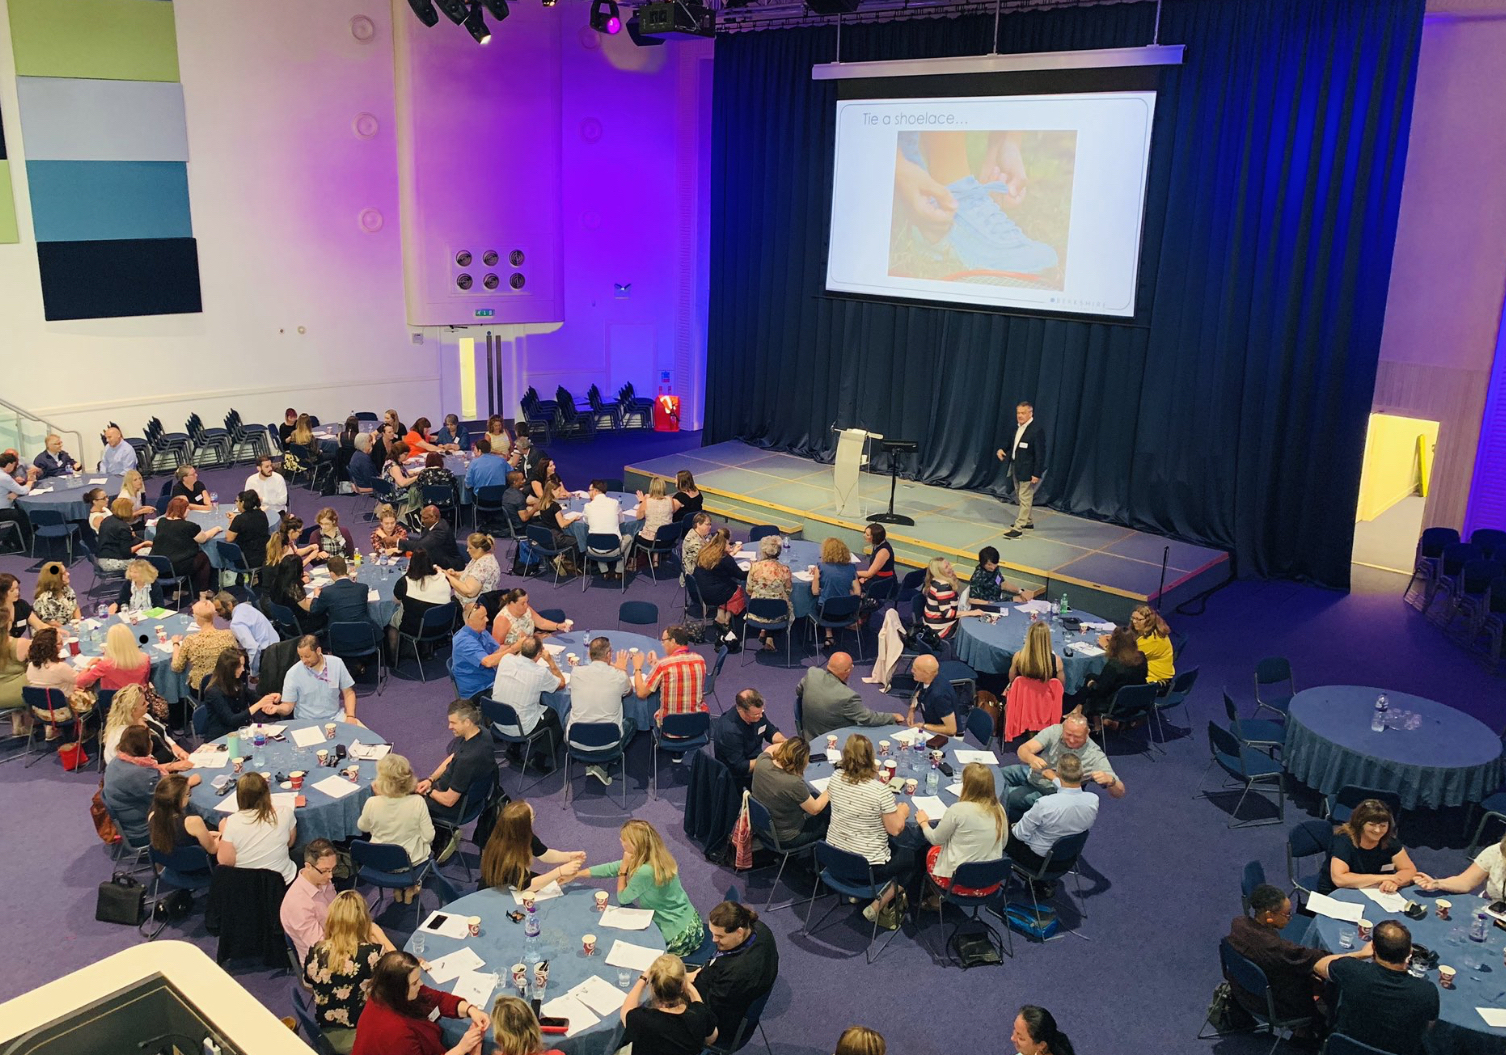 delivering a keynote speech to a conference of 200 people. Winchester, UK, July 2019